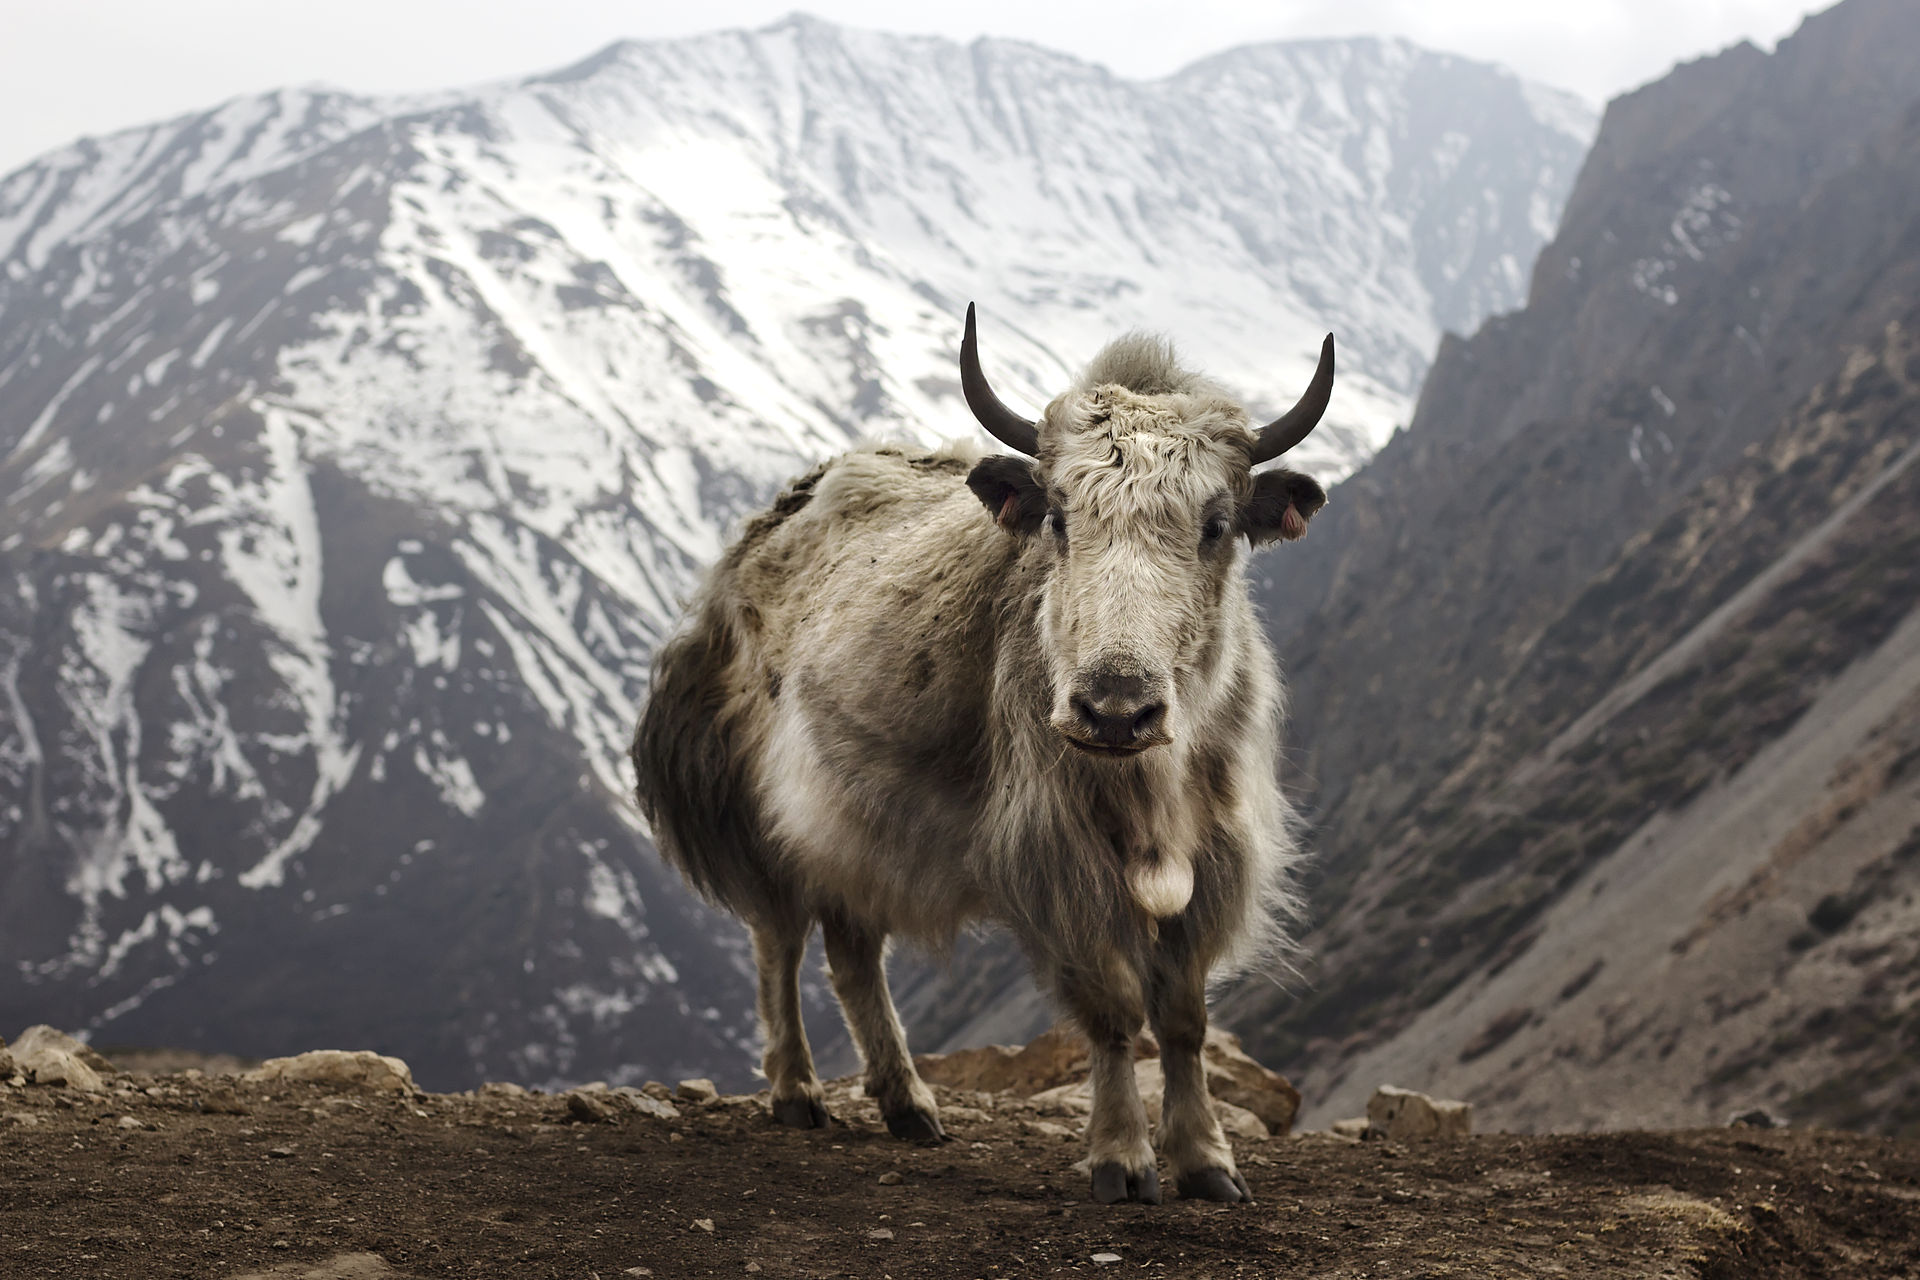 Yak by travelwayoflife - Flickr, CC BY-SA 2.0